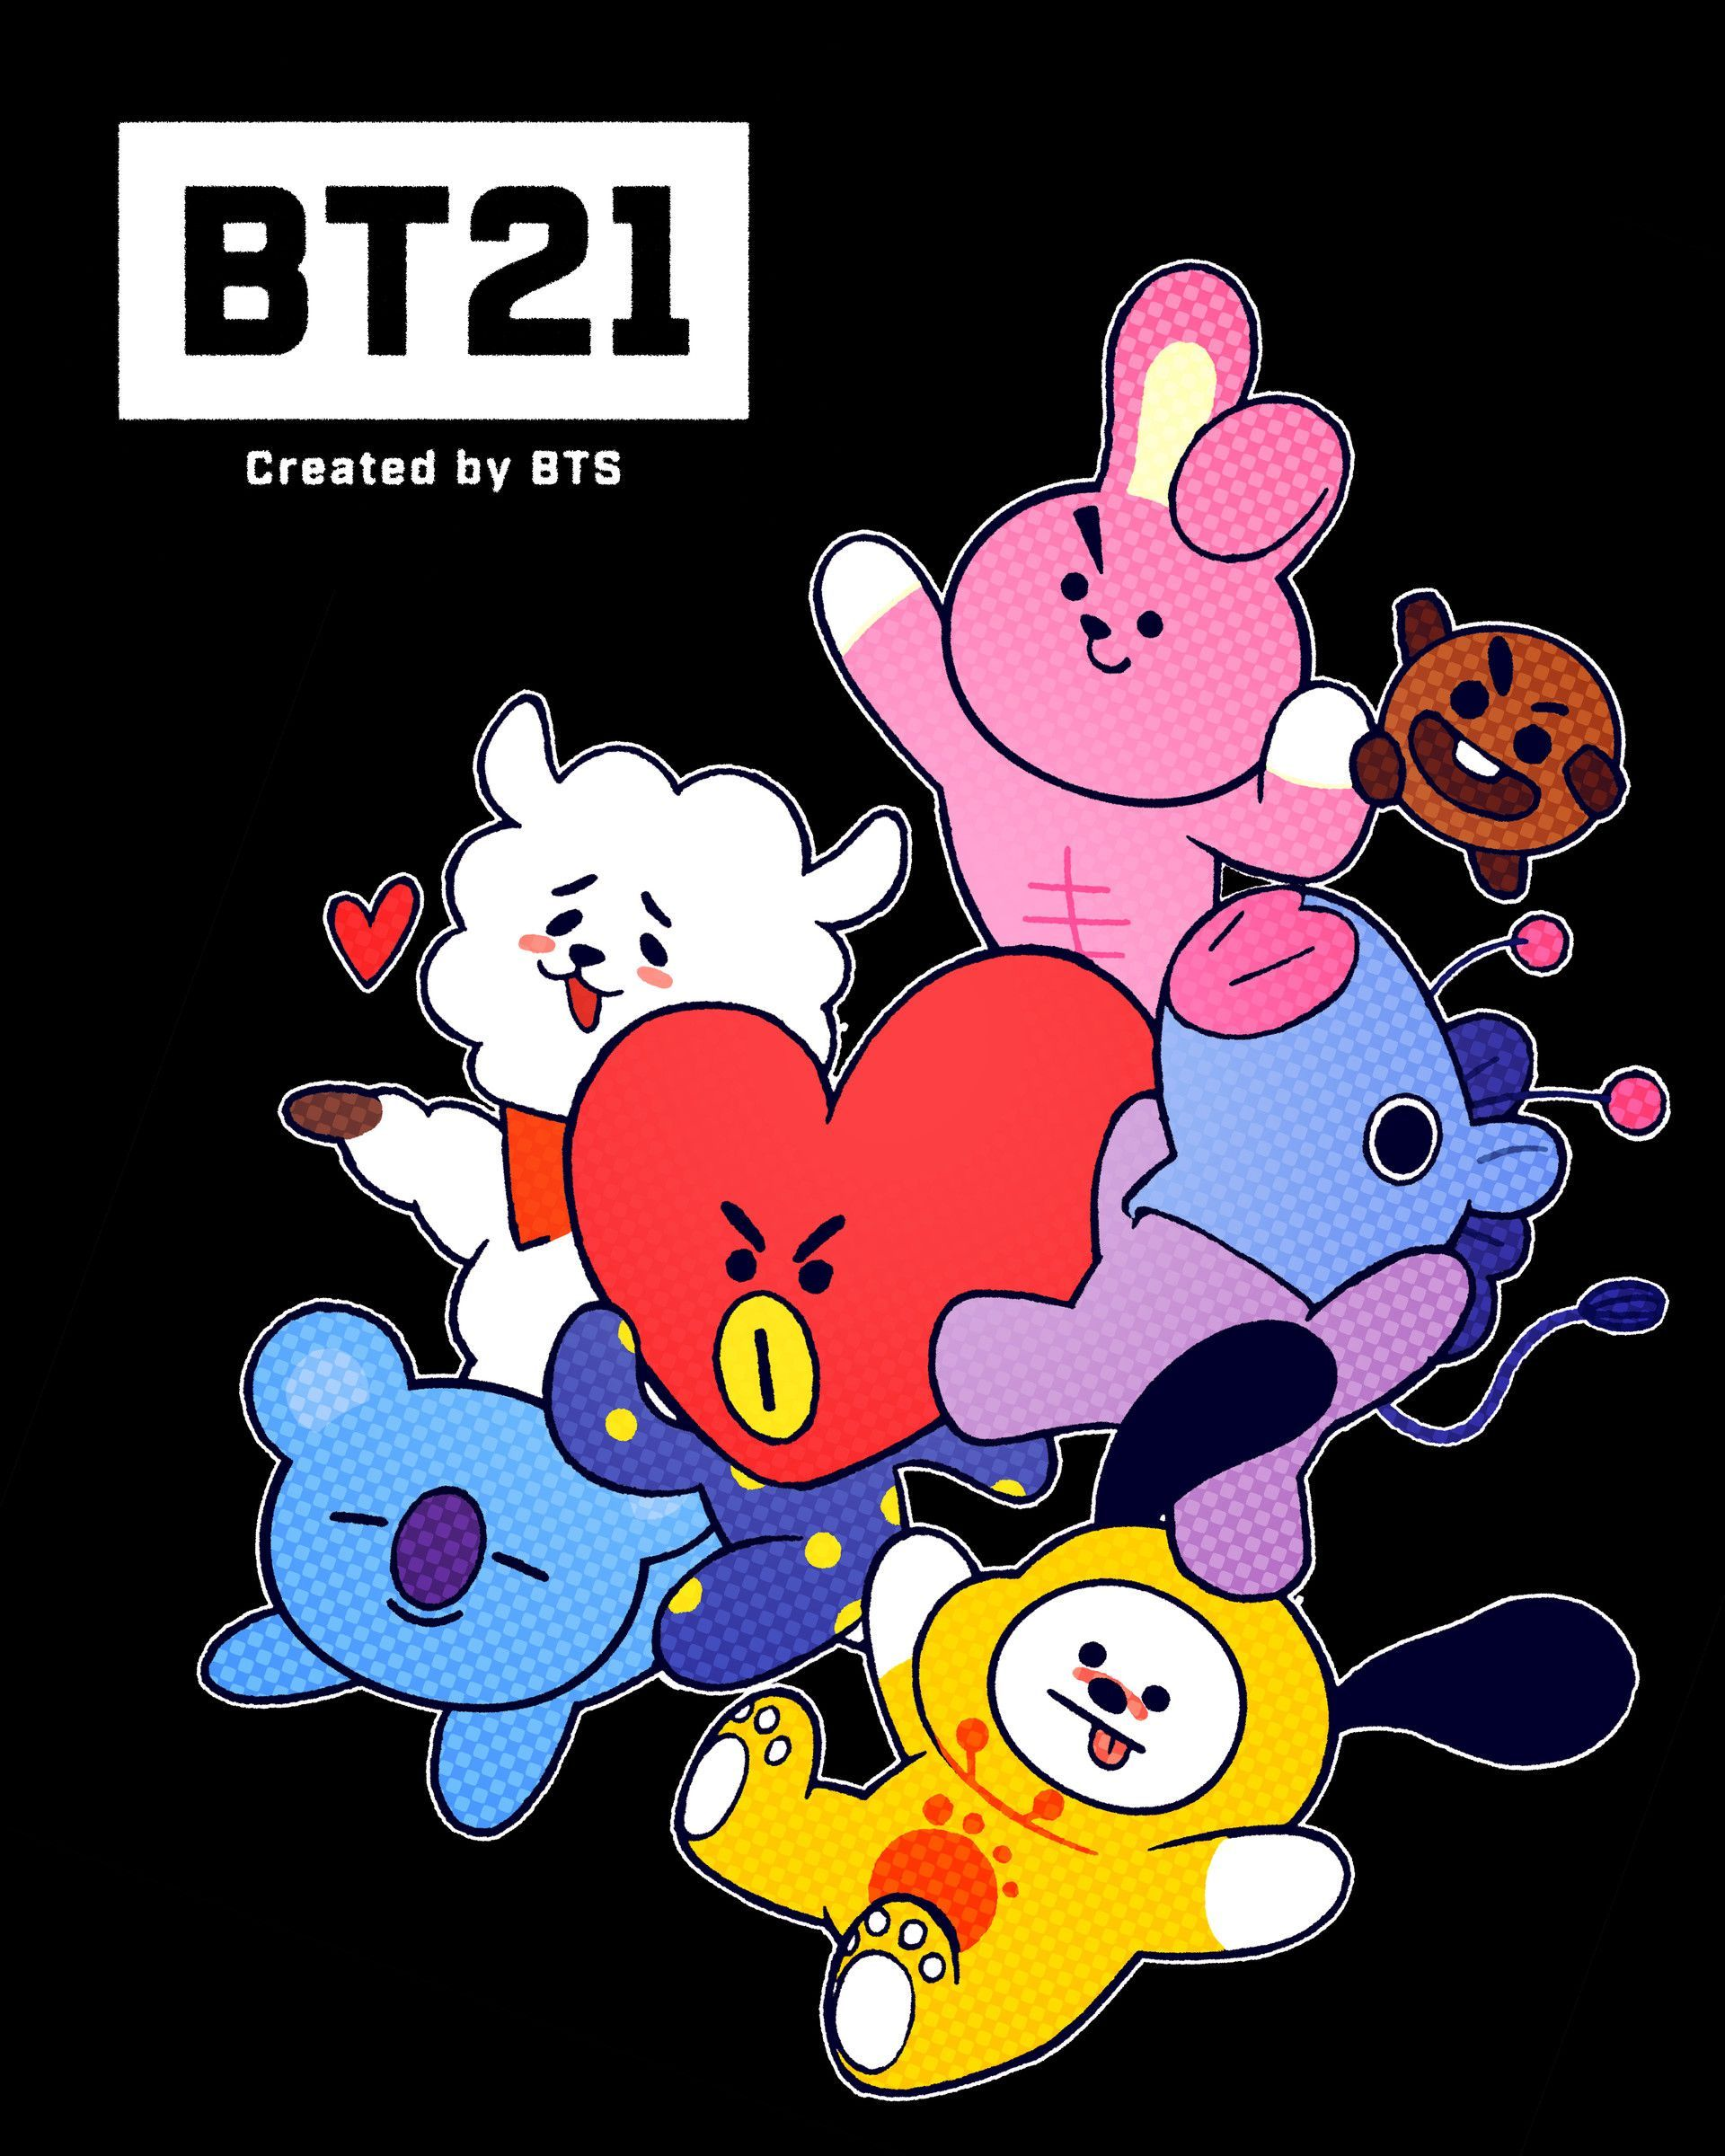 Bt21 Wallpaper Summer Drgokhanakturk.com